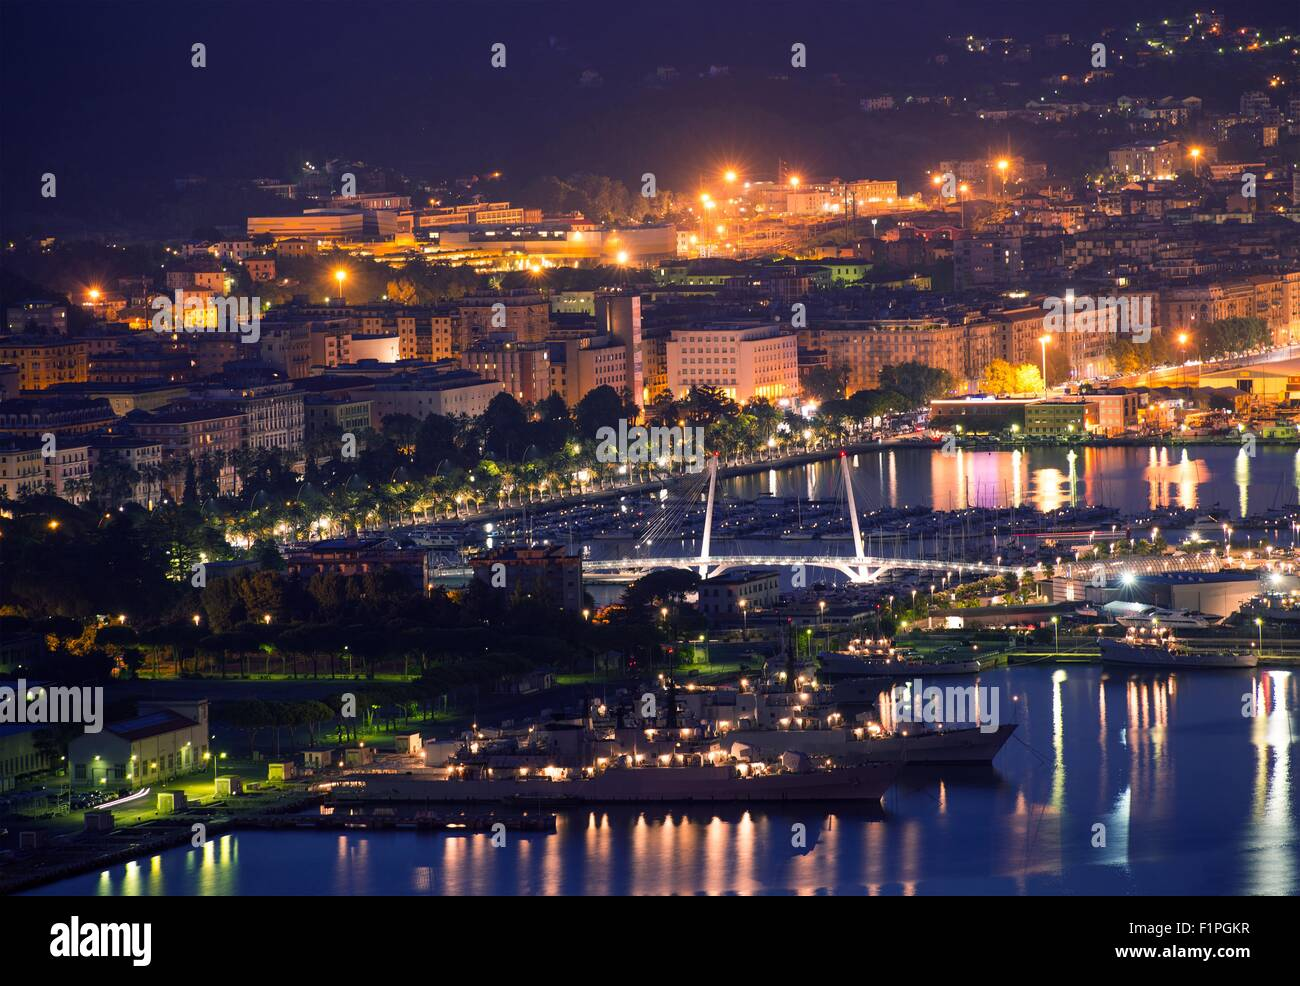 La Spezia Italy at Night. Hot Summer Night in Northern Italy, Europe. Cityscape Panorama at Night. - Stock Image